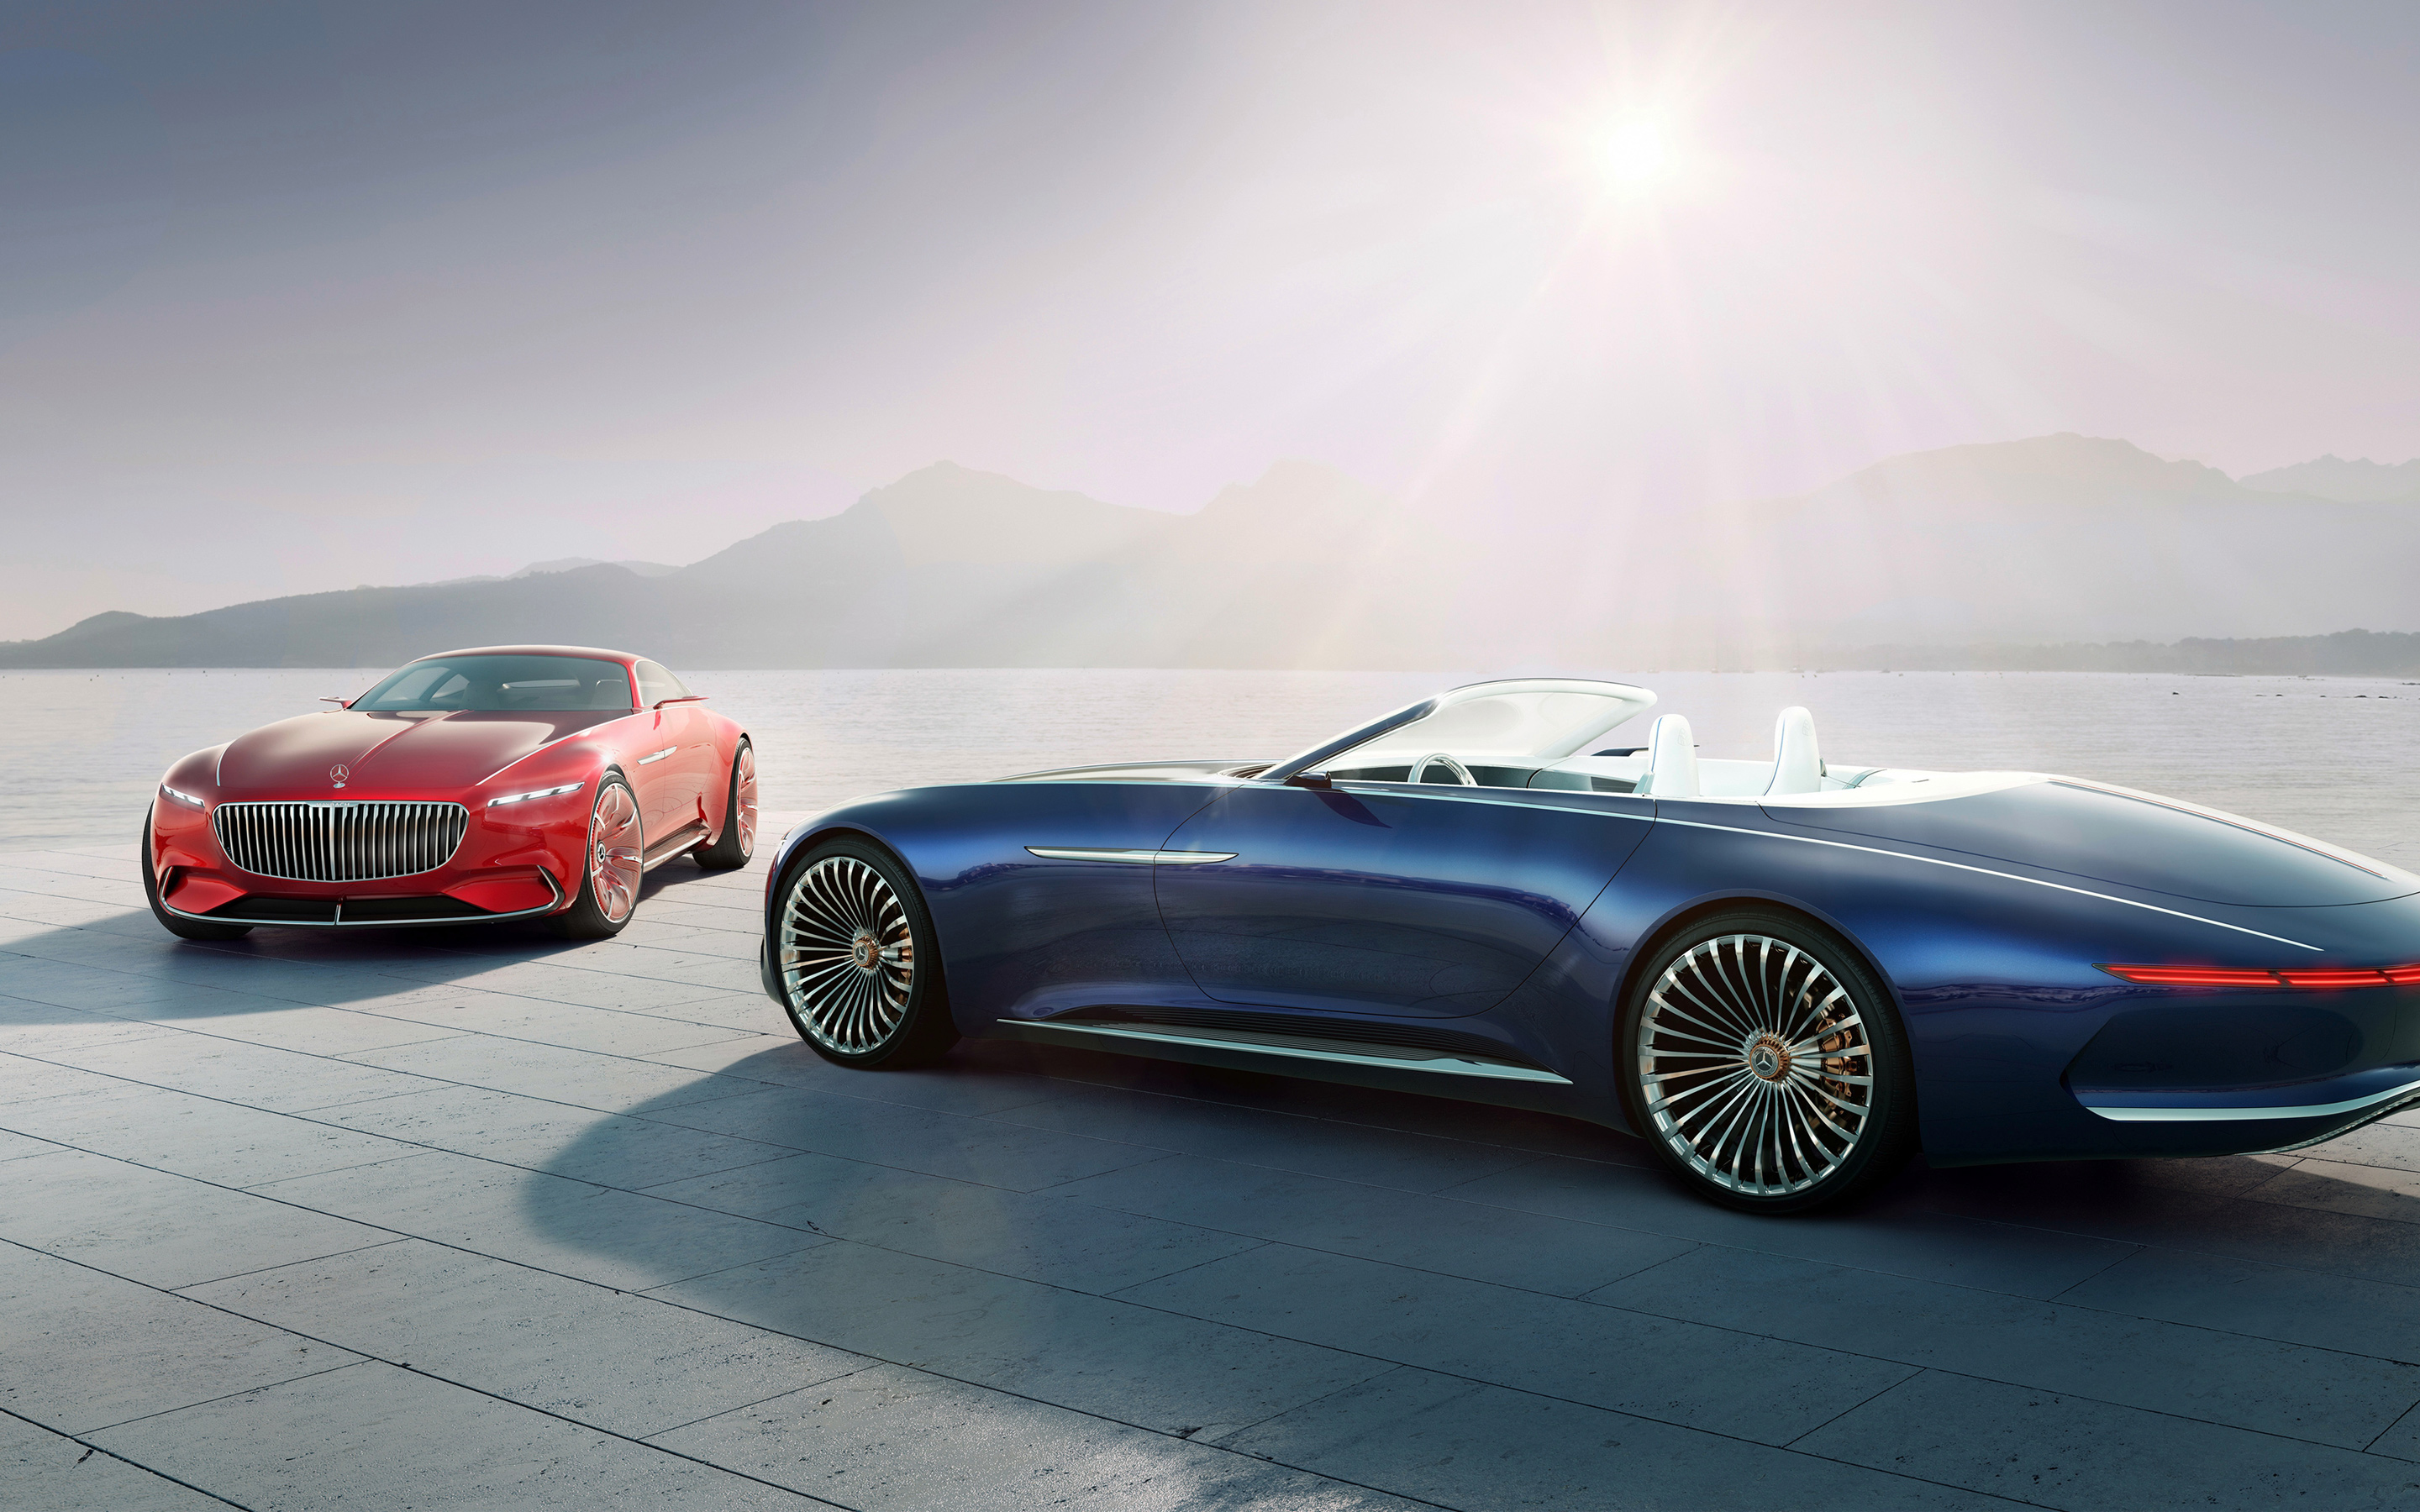 Vision Mercedes Maybach 6 Coupe Cabriolet 4K369362625 - Vision Mercedes Maybach 6 Coupe Cabriolet 4K - Vision, Mercedes, Maybach, Lucid, Coupe, Cabriolet